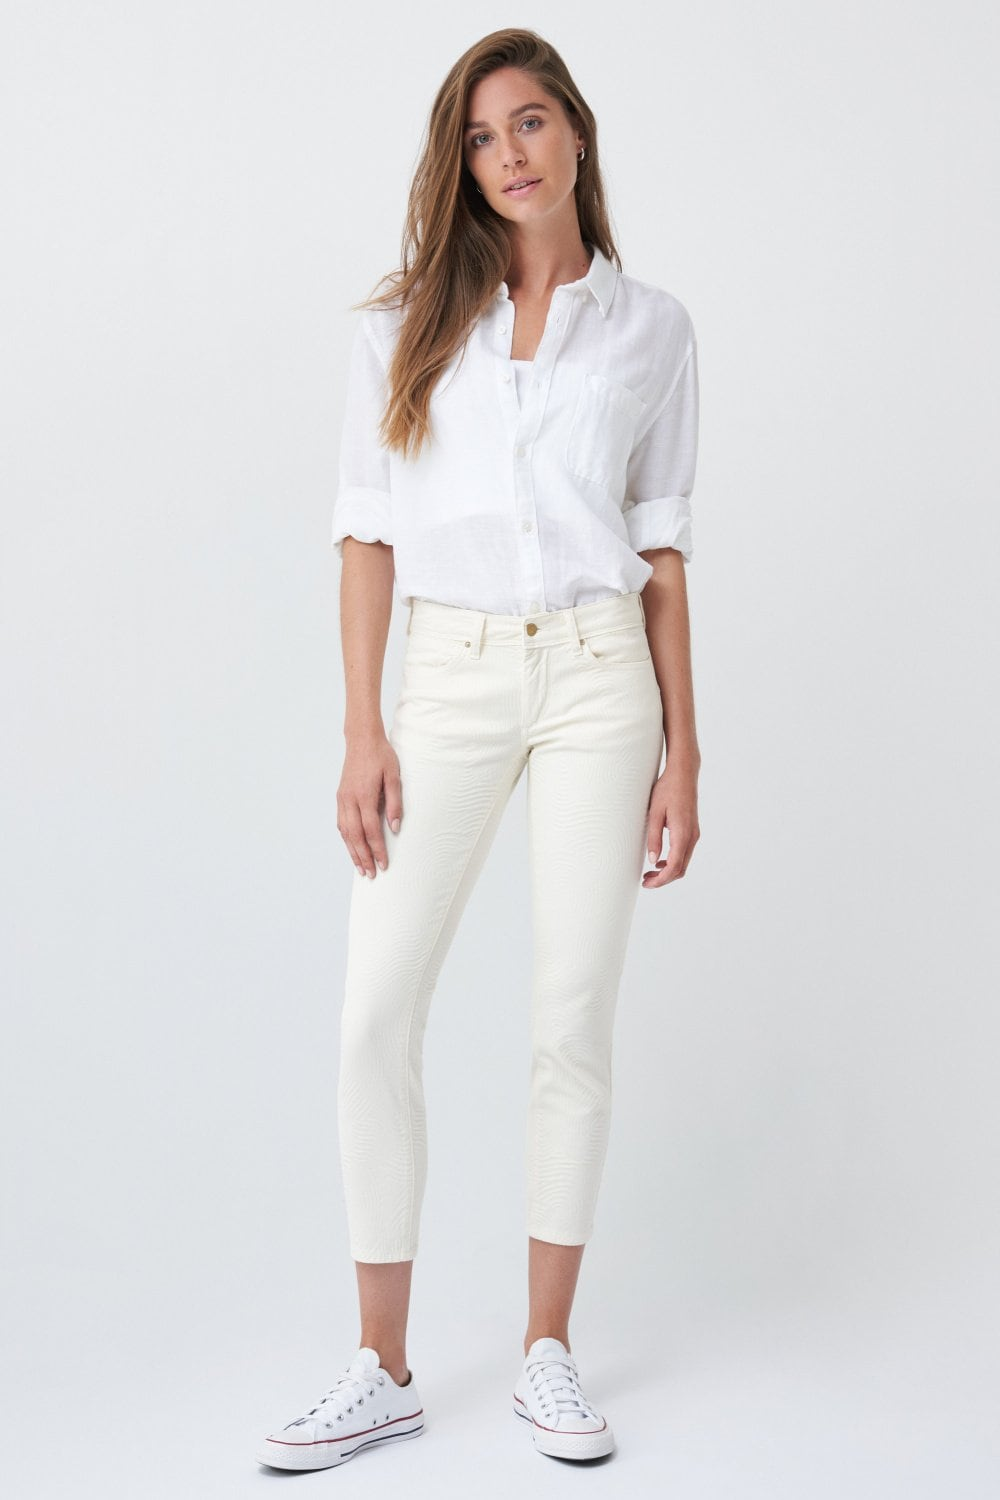 Push up Wonder capri jacquard jeans - Salsa